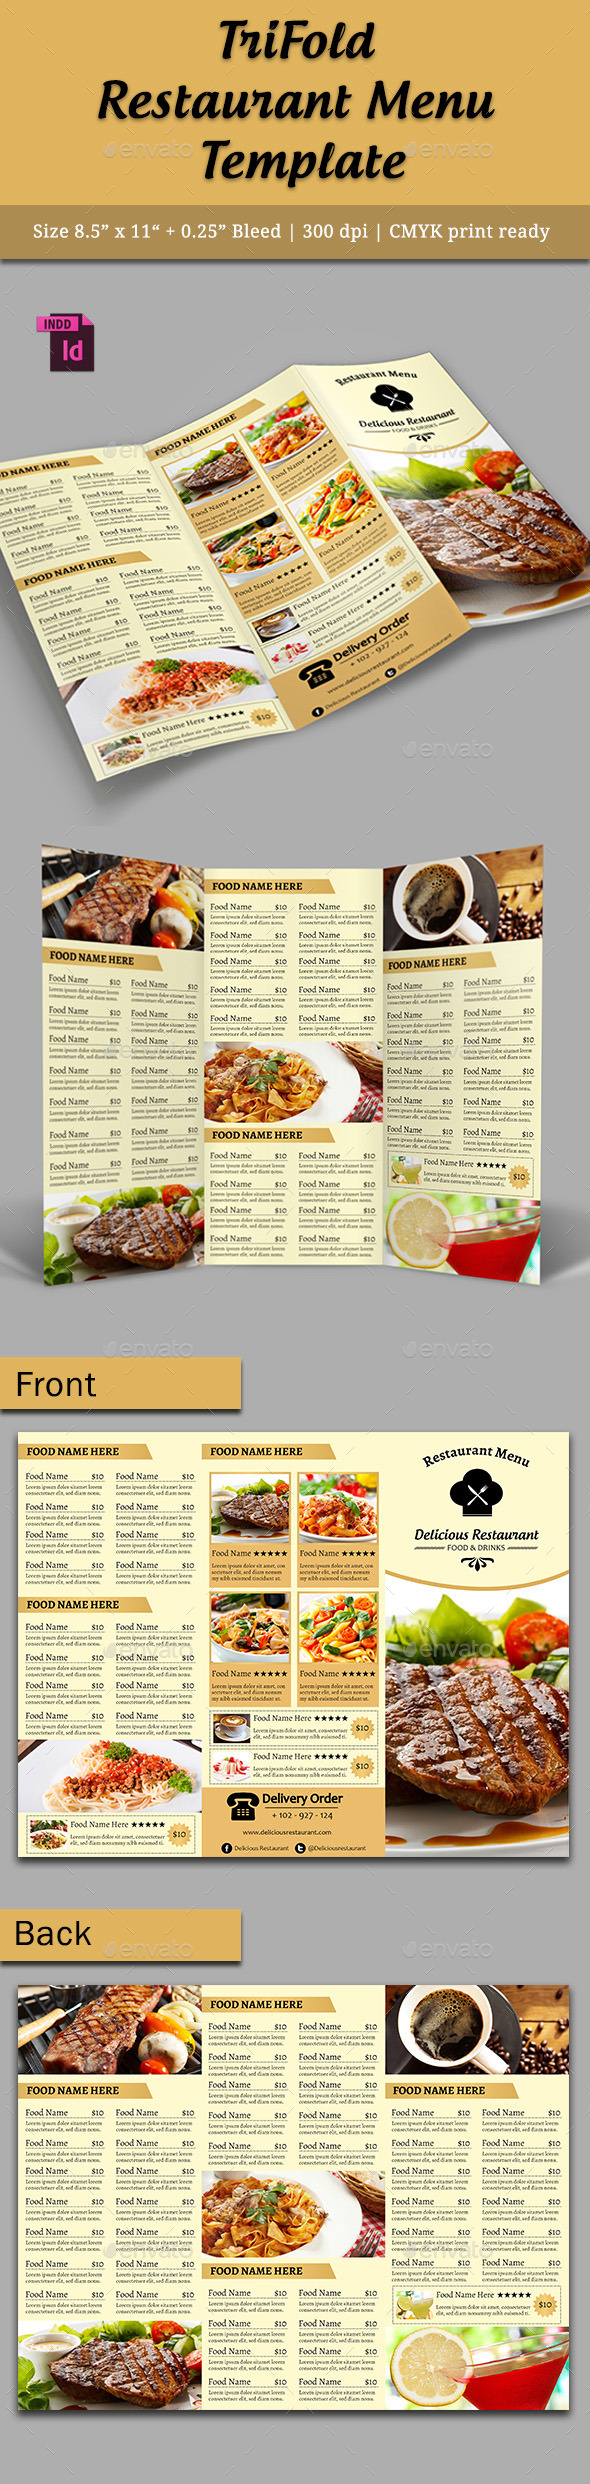 TriFold Restaurant Menu Template Vol. 5 - Food Menus Print Templates